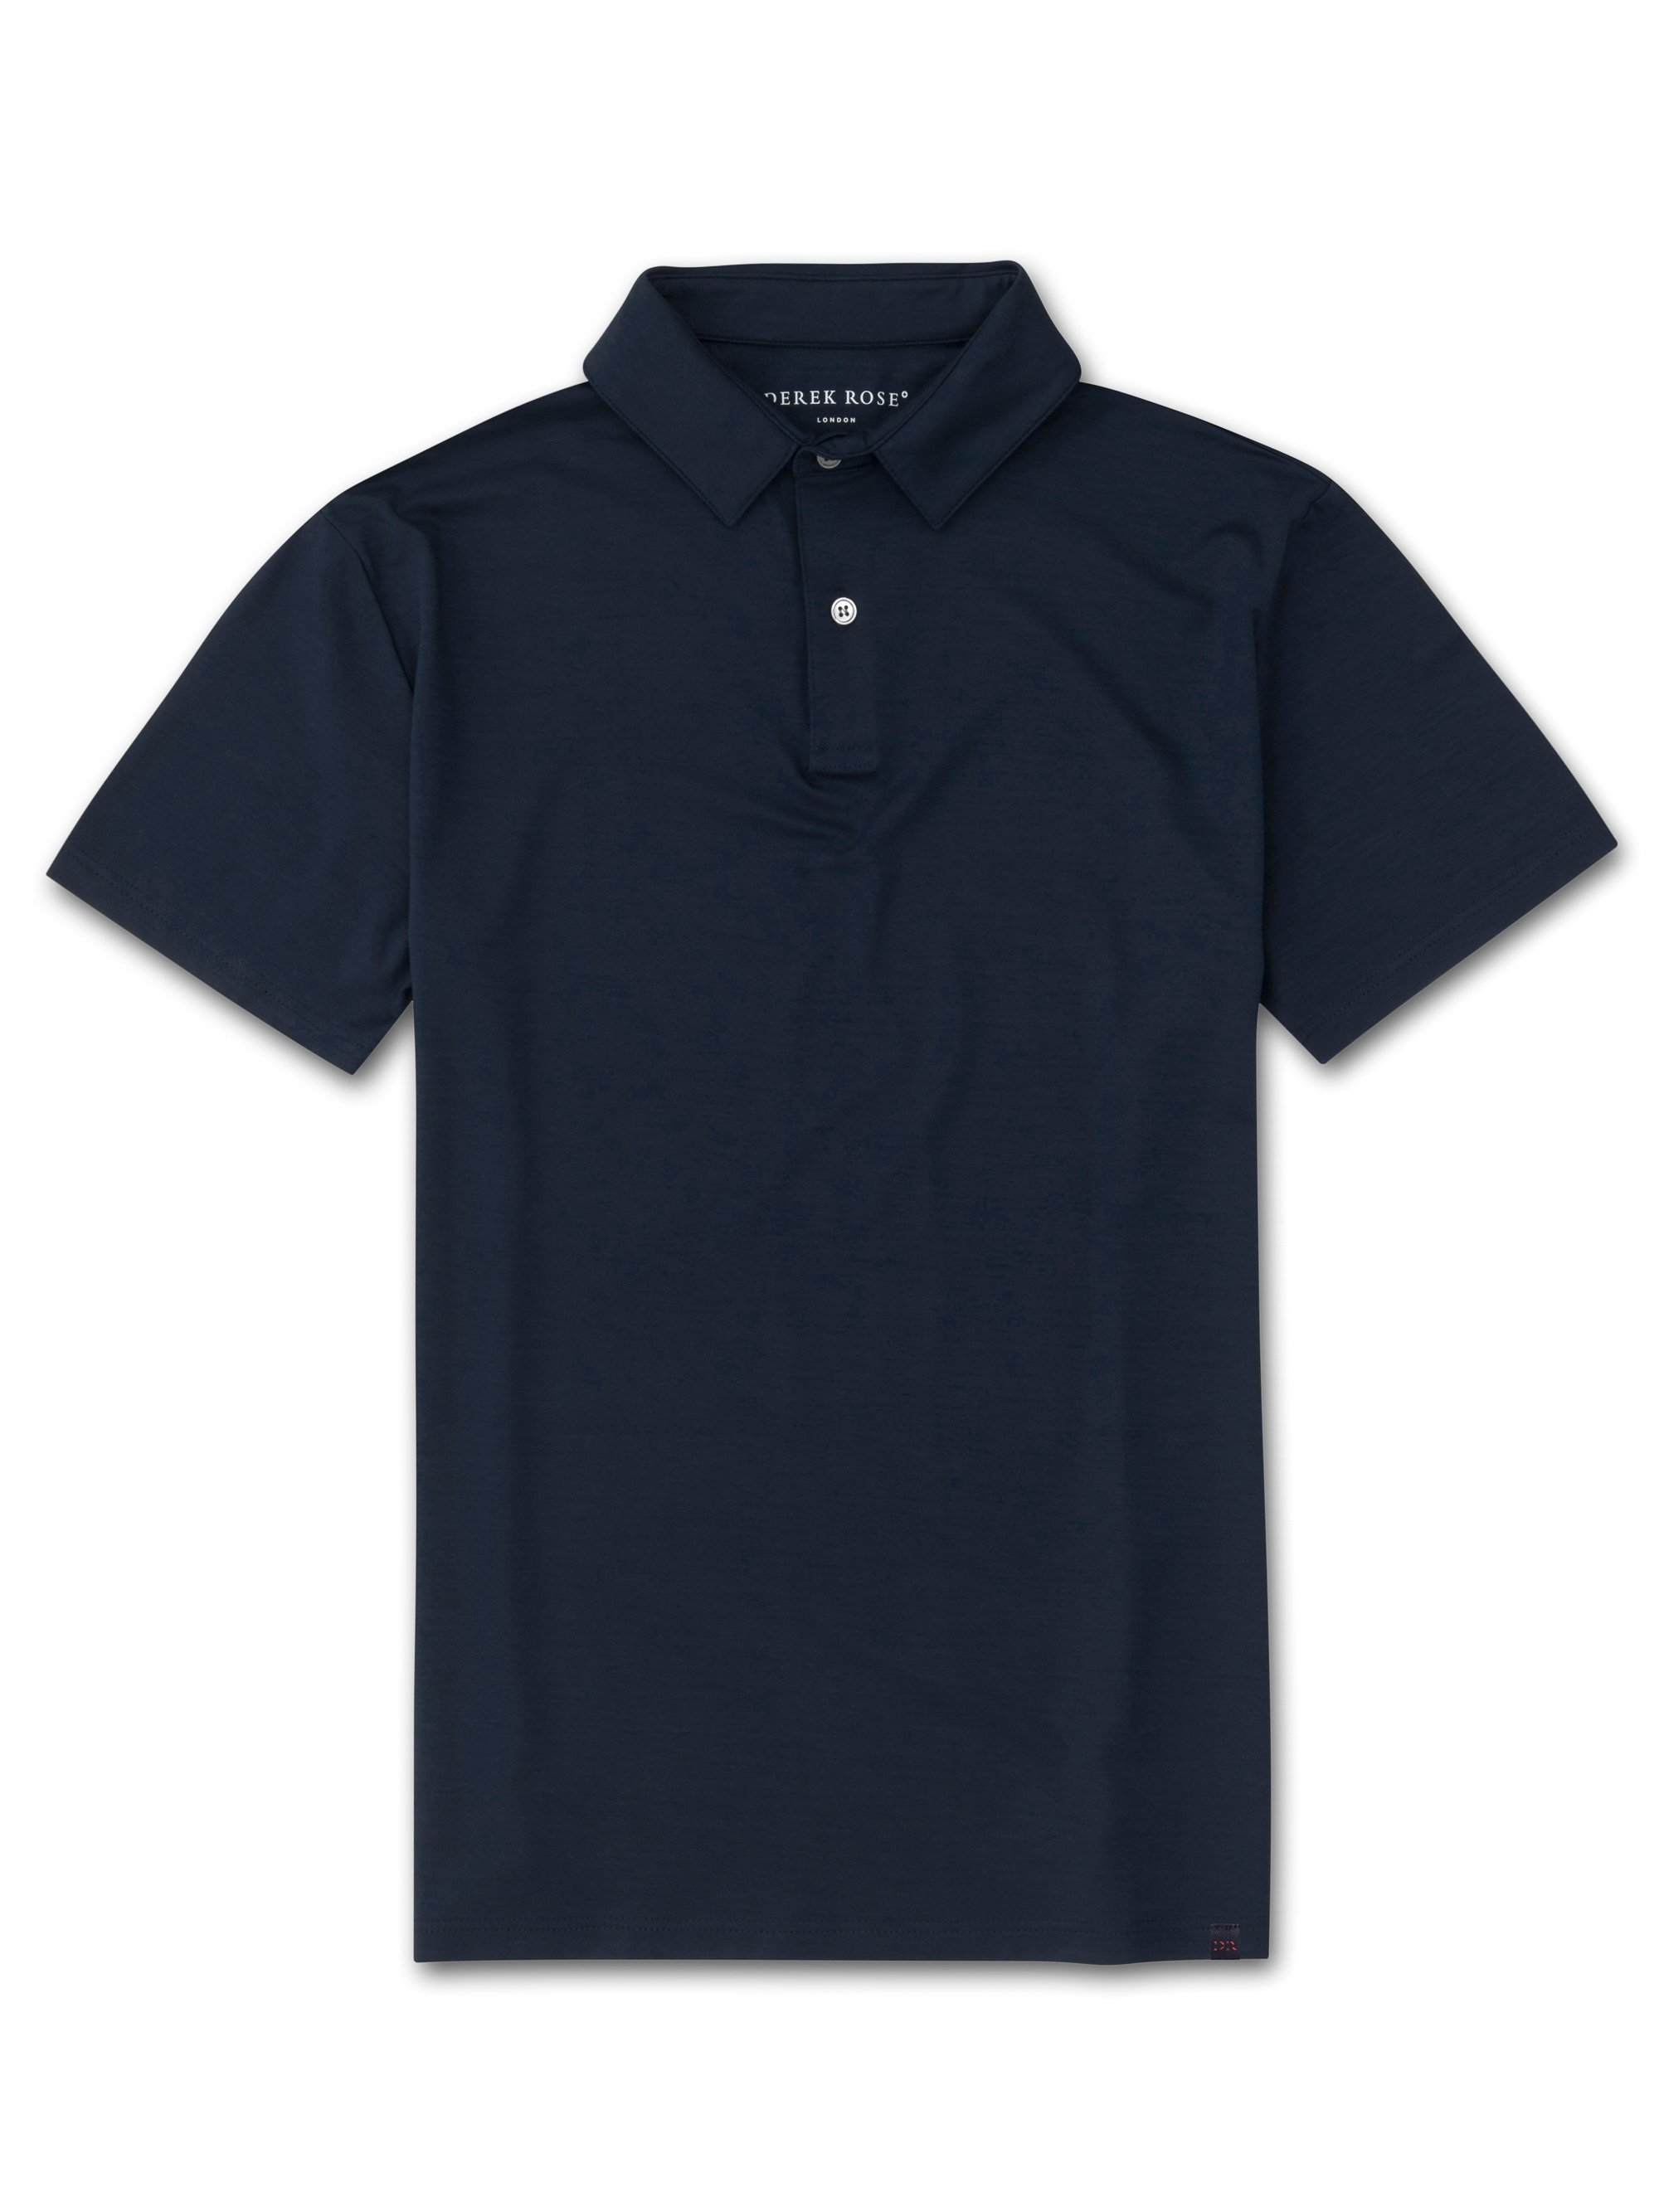 Men's Short Sleeve Polo Shirt Ramsay Pique Cotton Tencel Navy